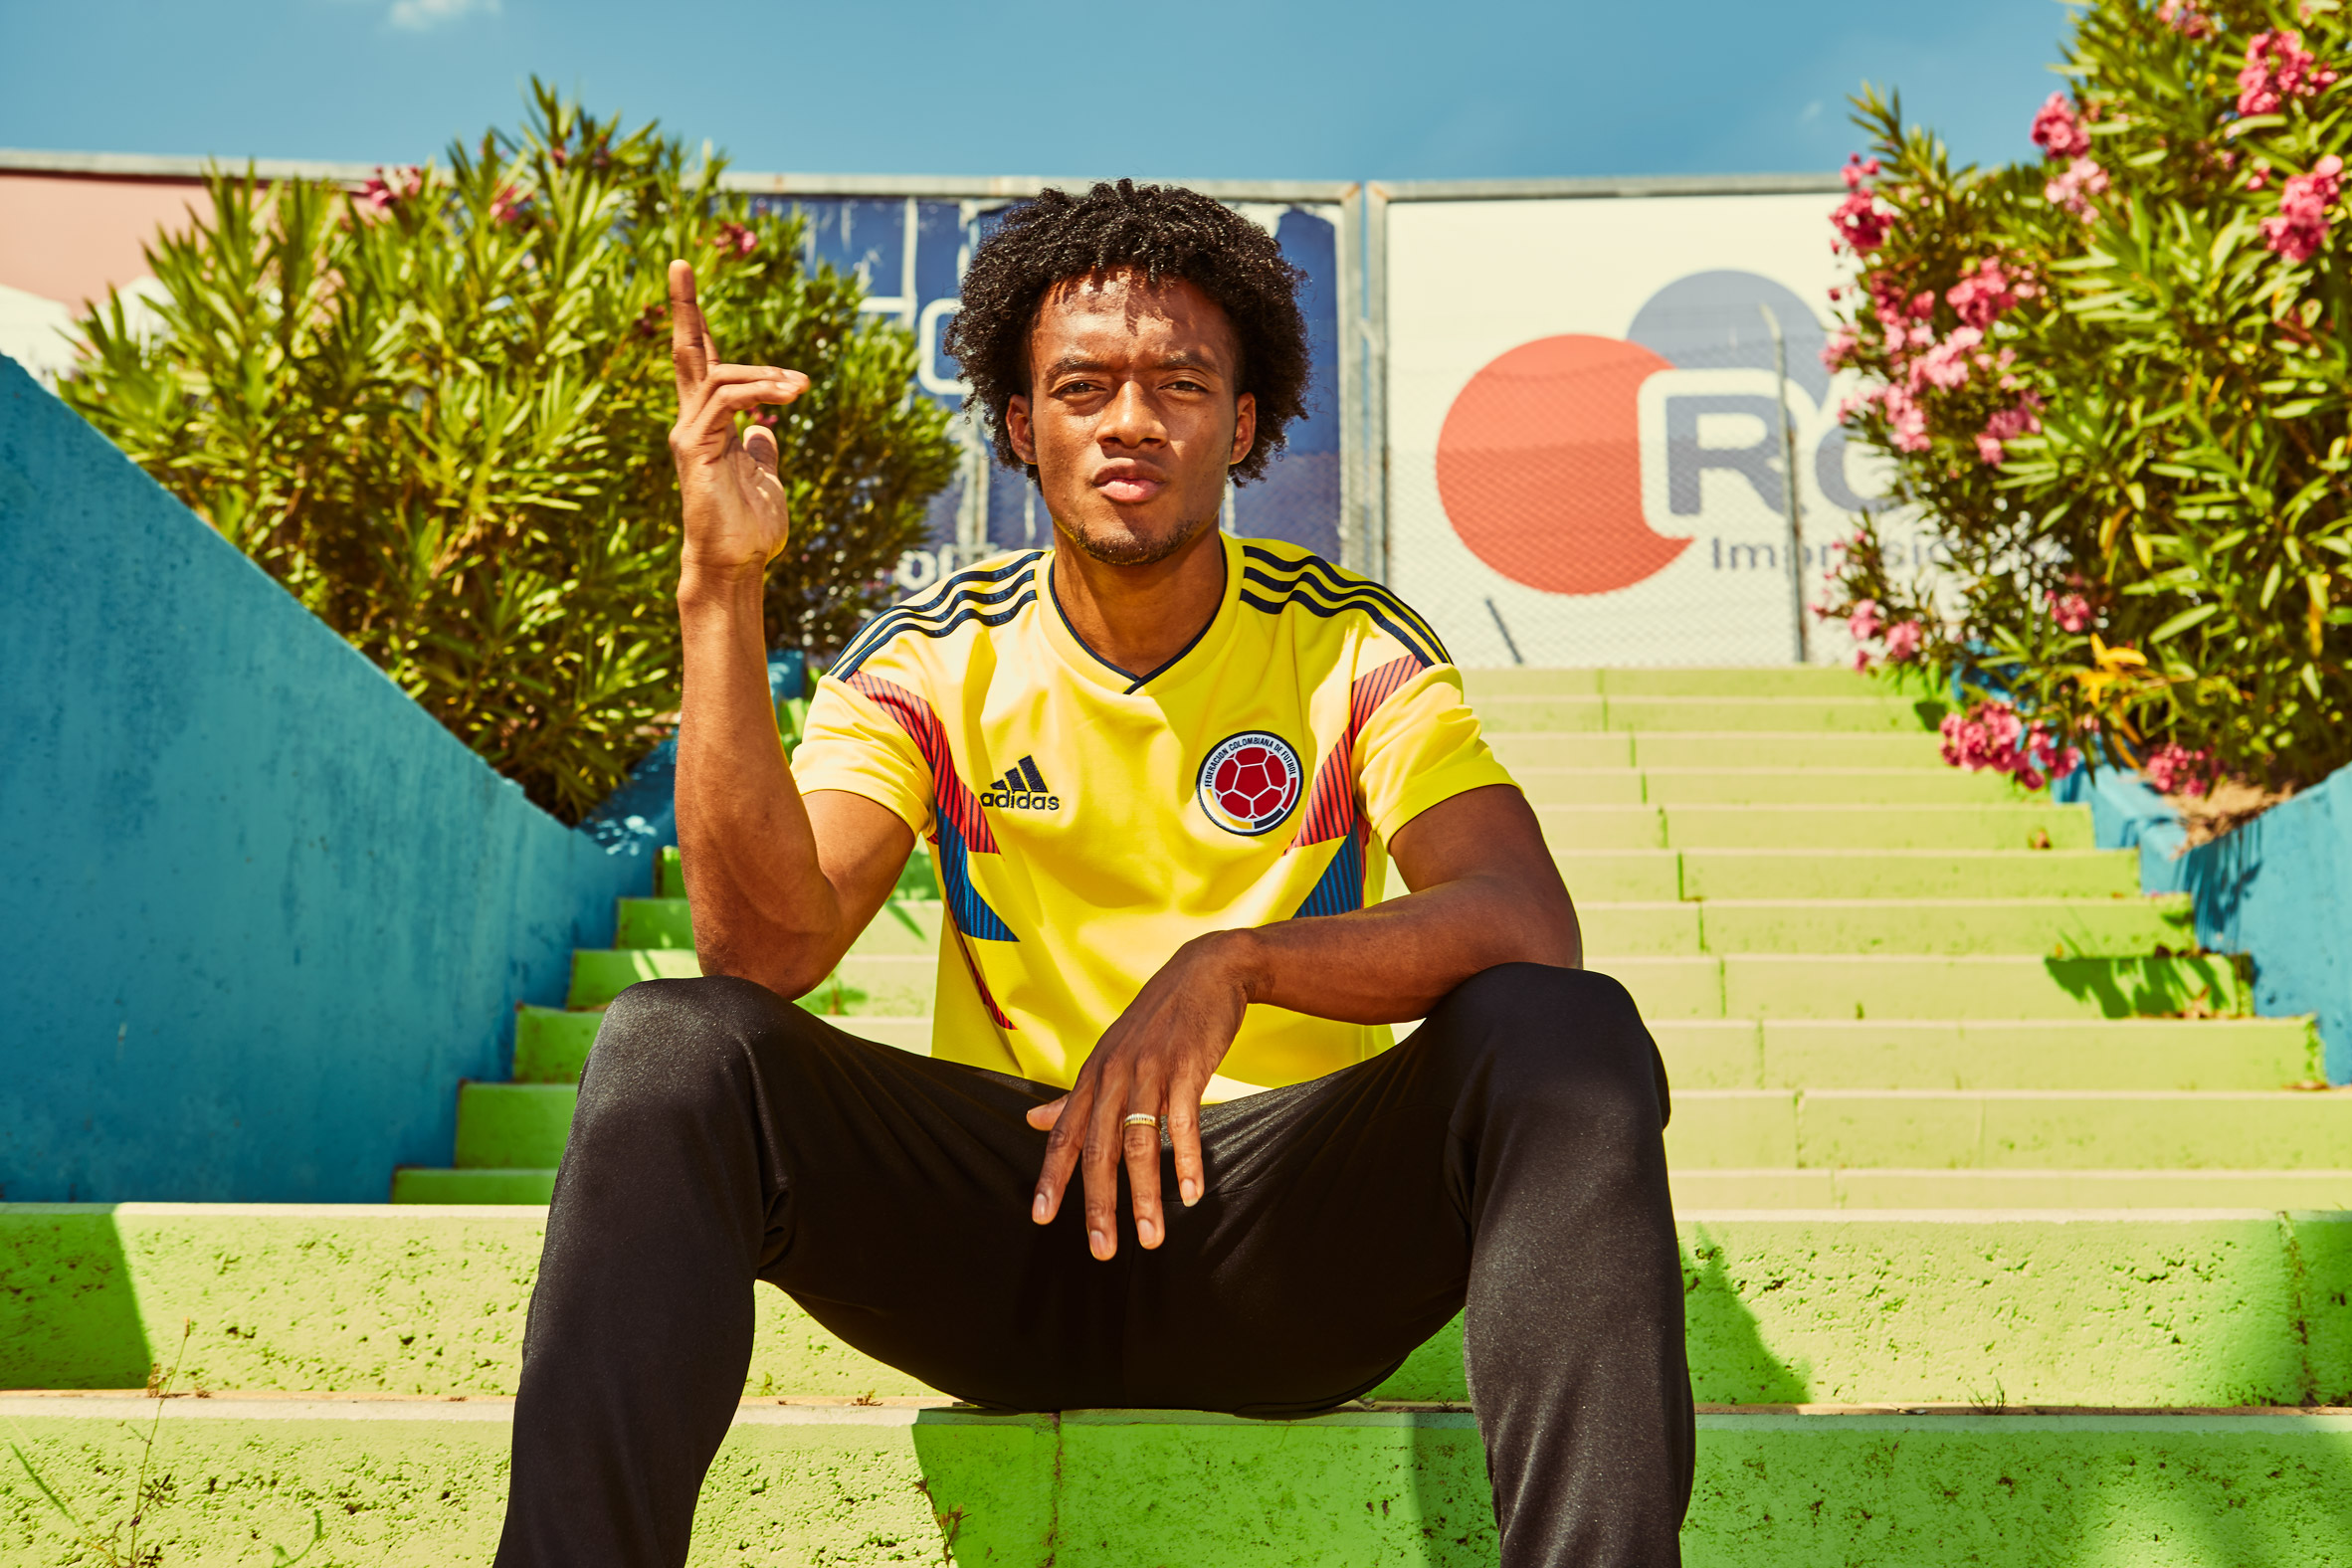 07e28d59a73 Colombia's striking new yellow home kit is directly inspired by their  iconic World Cup 1990 version. It features similar spiky blue and red  graphics on the ...